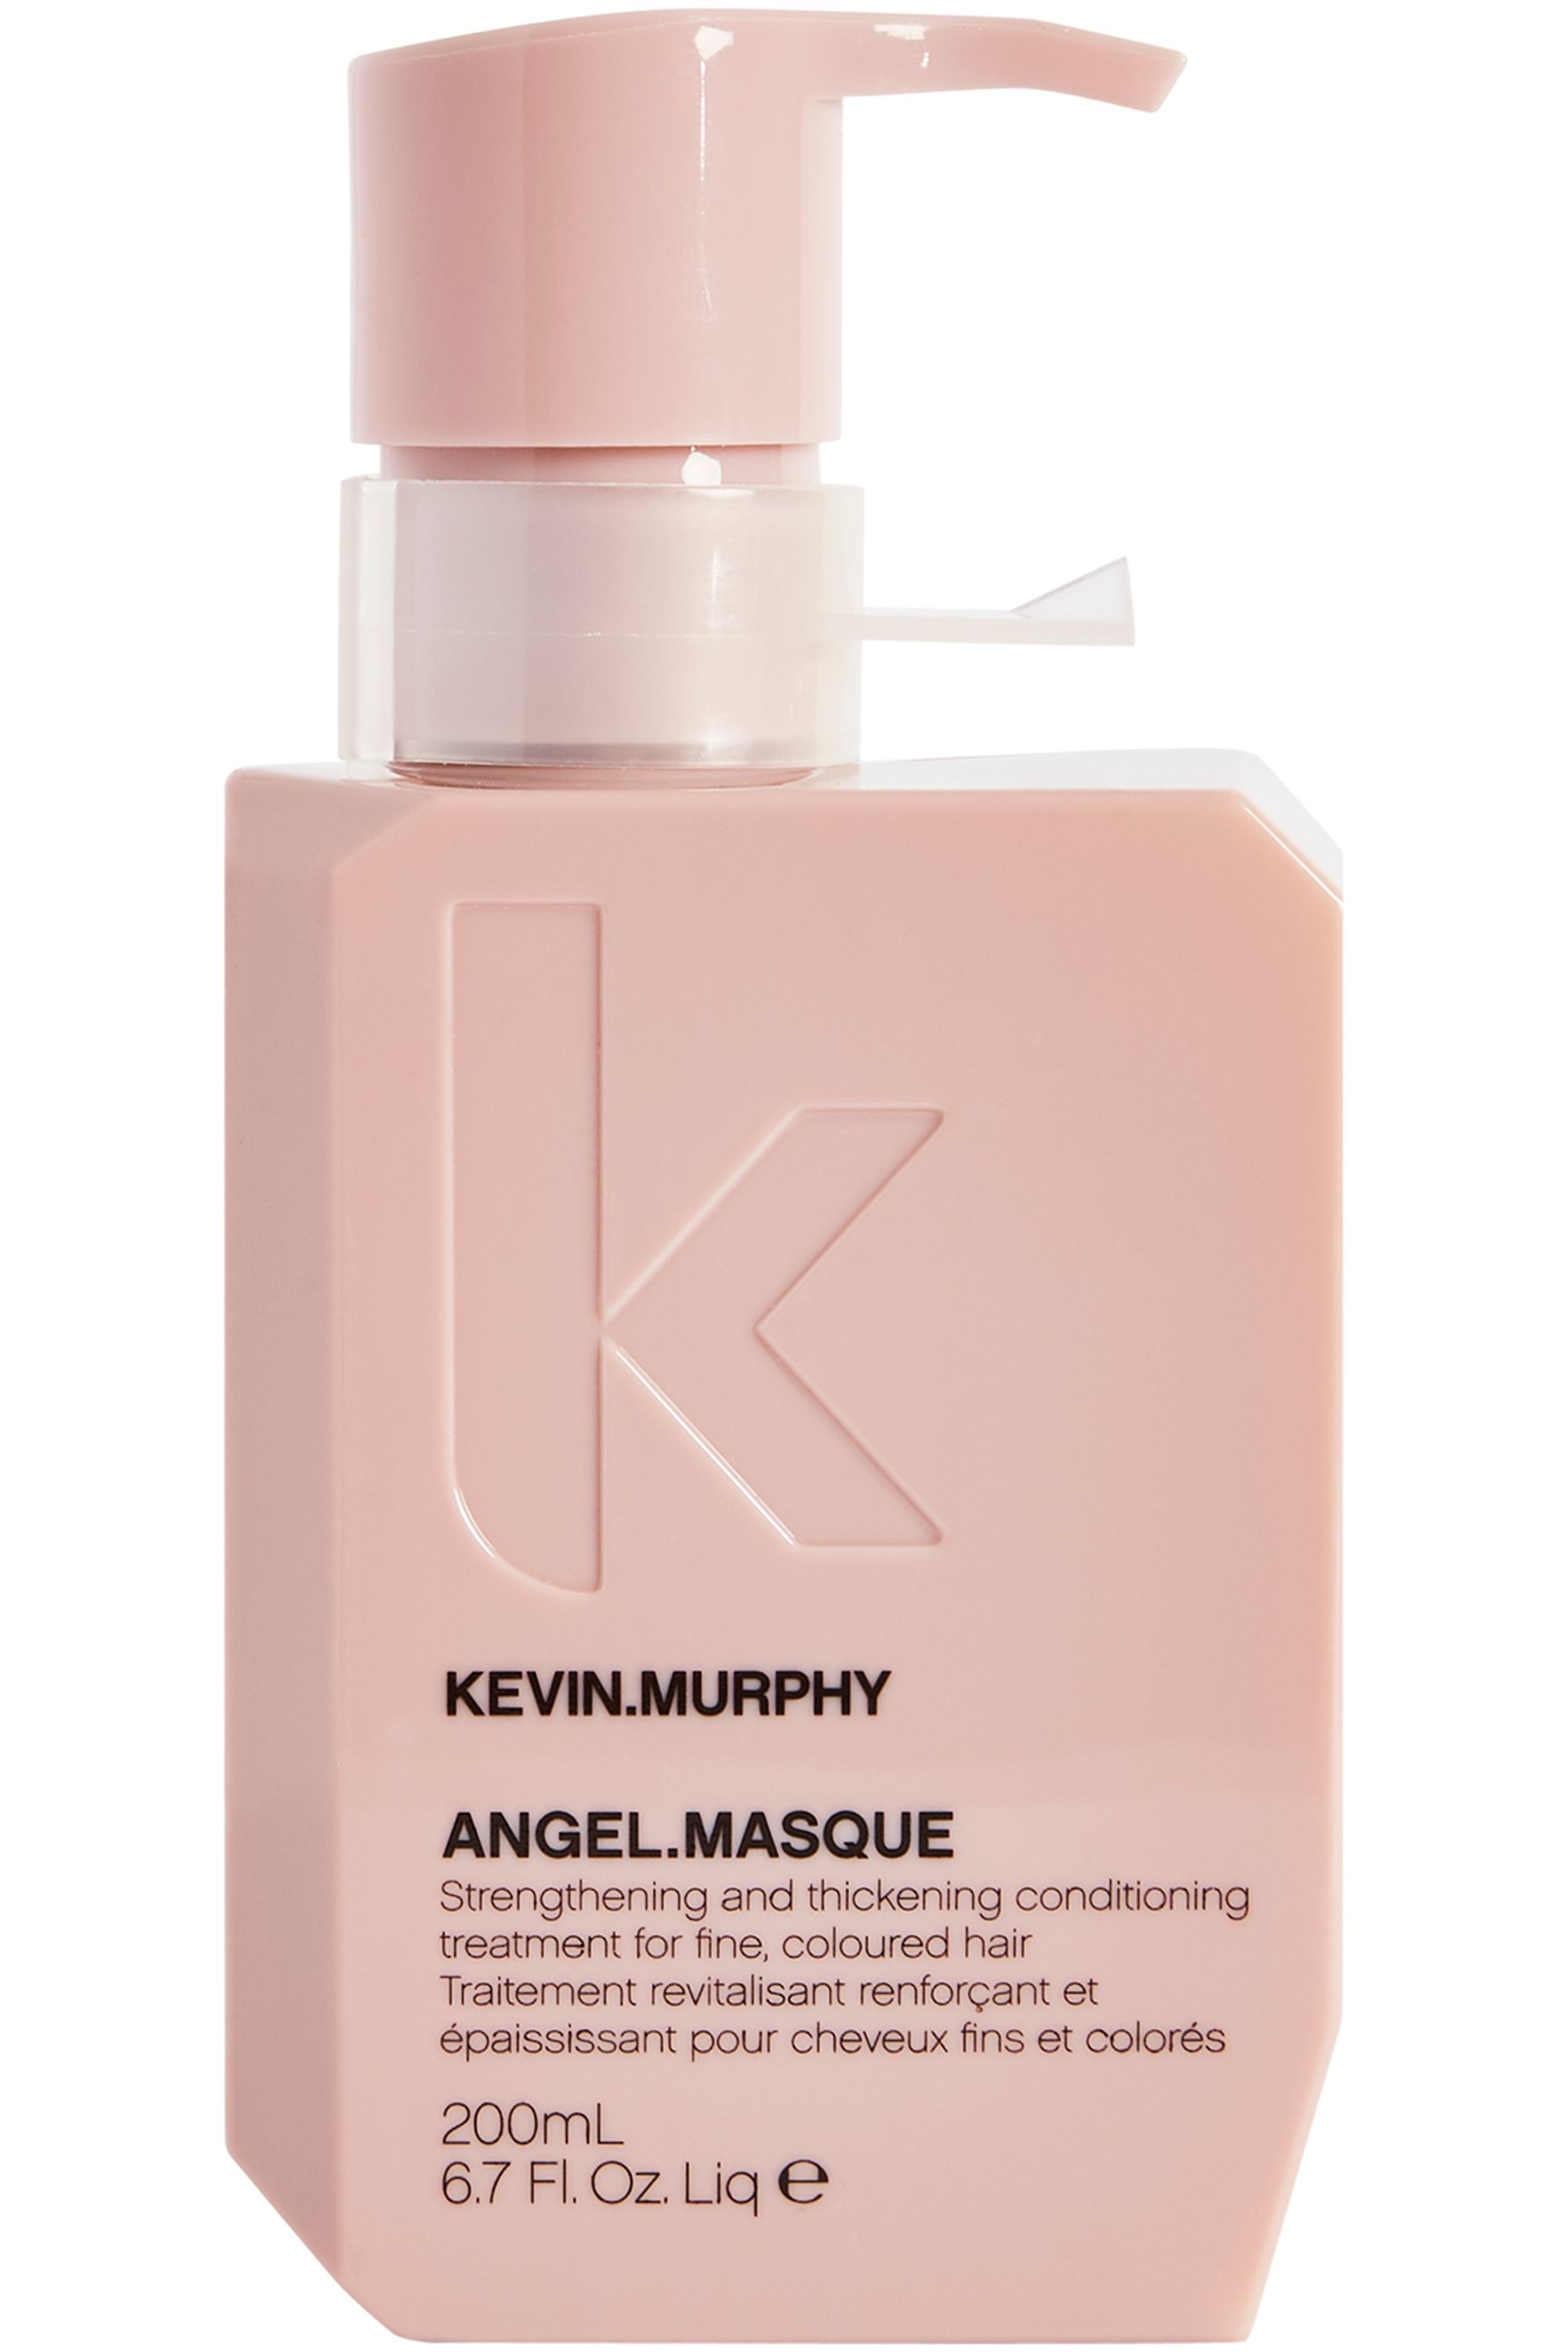 Blissim : KEVIN.MURPHY - Masque revitalisant épaississant ANGEL.MASQUE - Masque revitalisant épaississant ANGEL.MASQUE